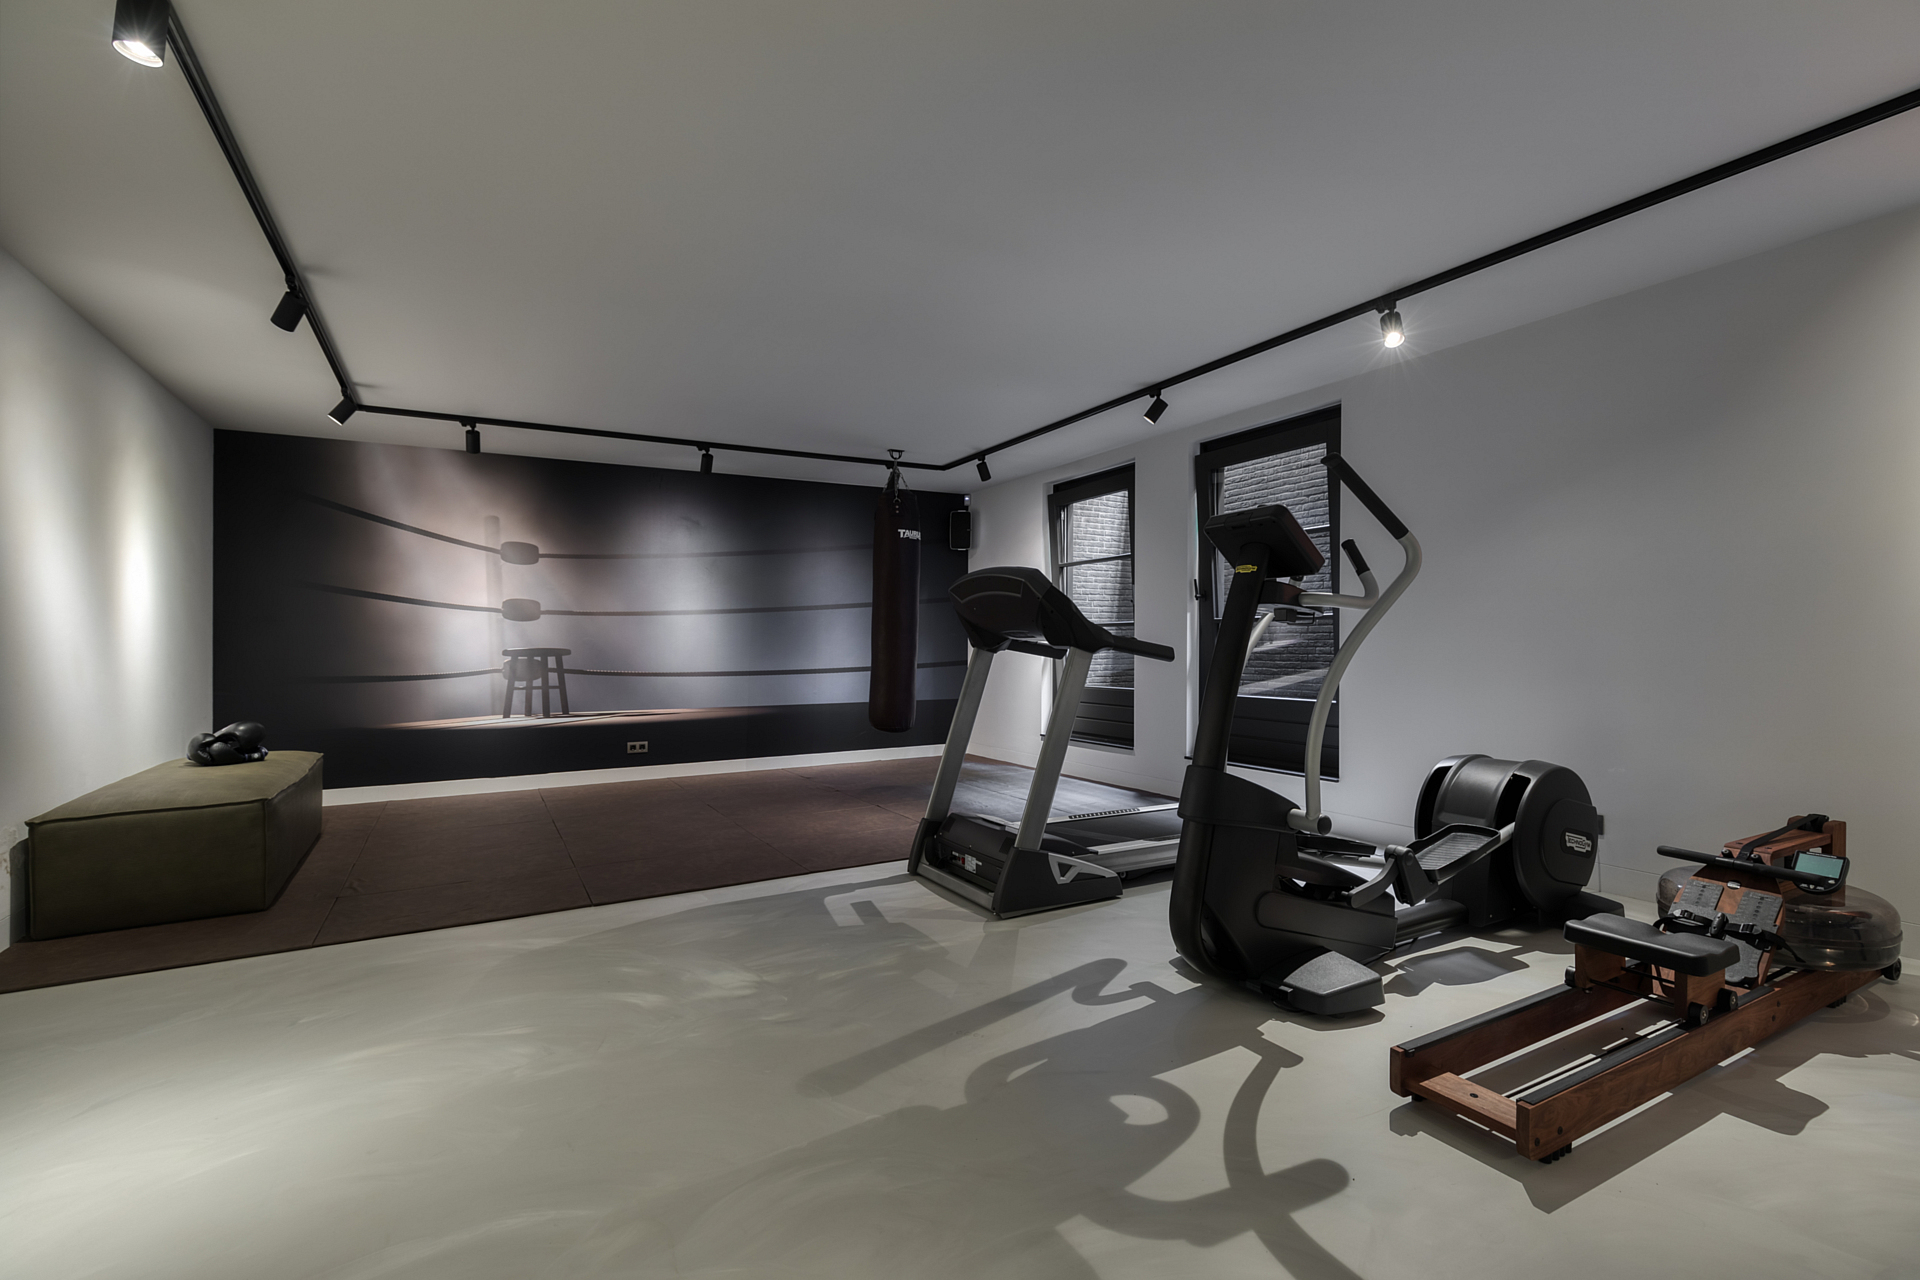 home gym with boxing ring wallposter and cardio equipment